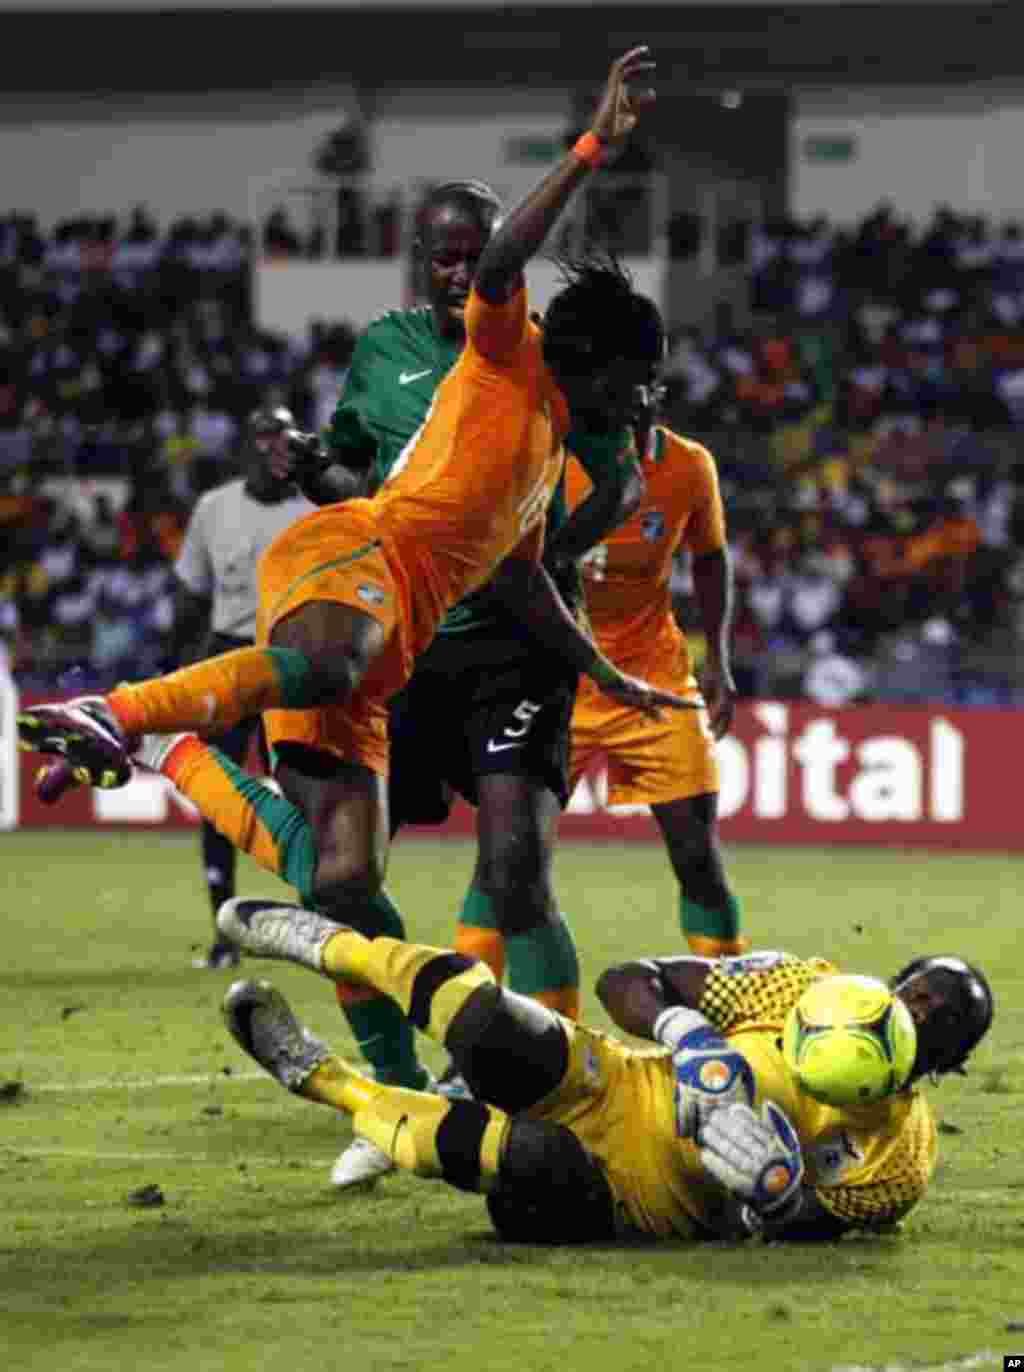 Ivory Coast's Gervinho (10) falls over Zambia's goalkeeper Kennedy Mweene (16) as he tries to score during their African Nations Cup final soccer match at the Stade De L'Amitie Stadium in Gabon's capital Libreville, February 12, 2012.